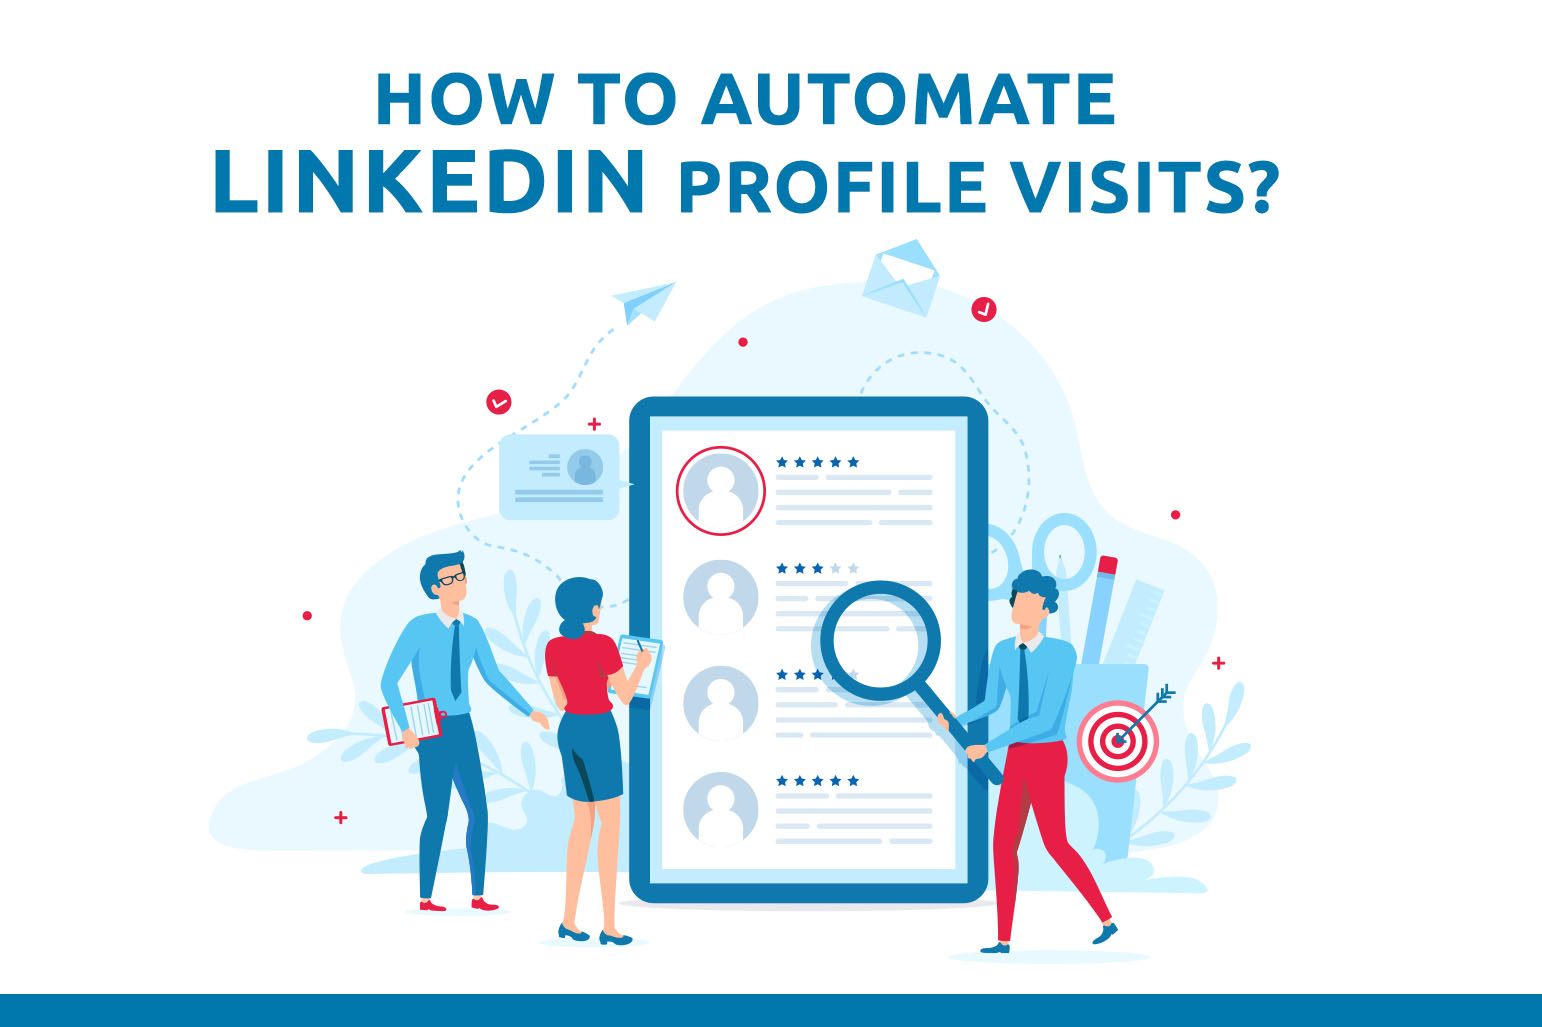 How To Automate LinkedIn Profile Visits